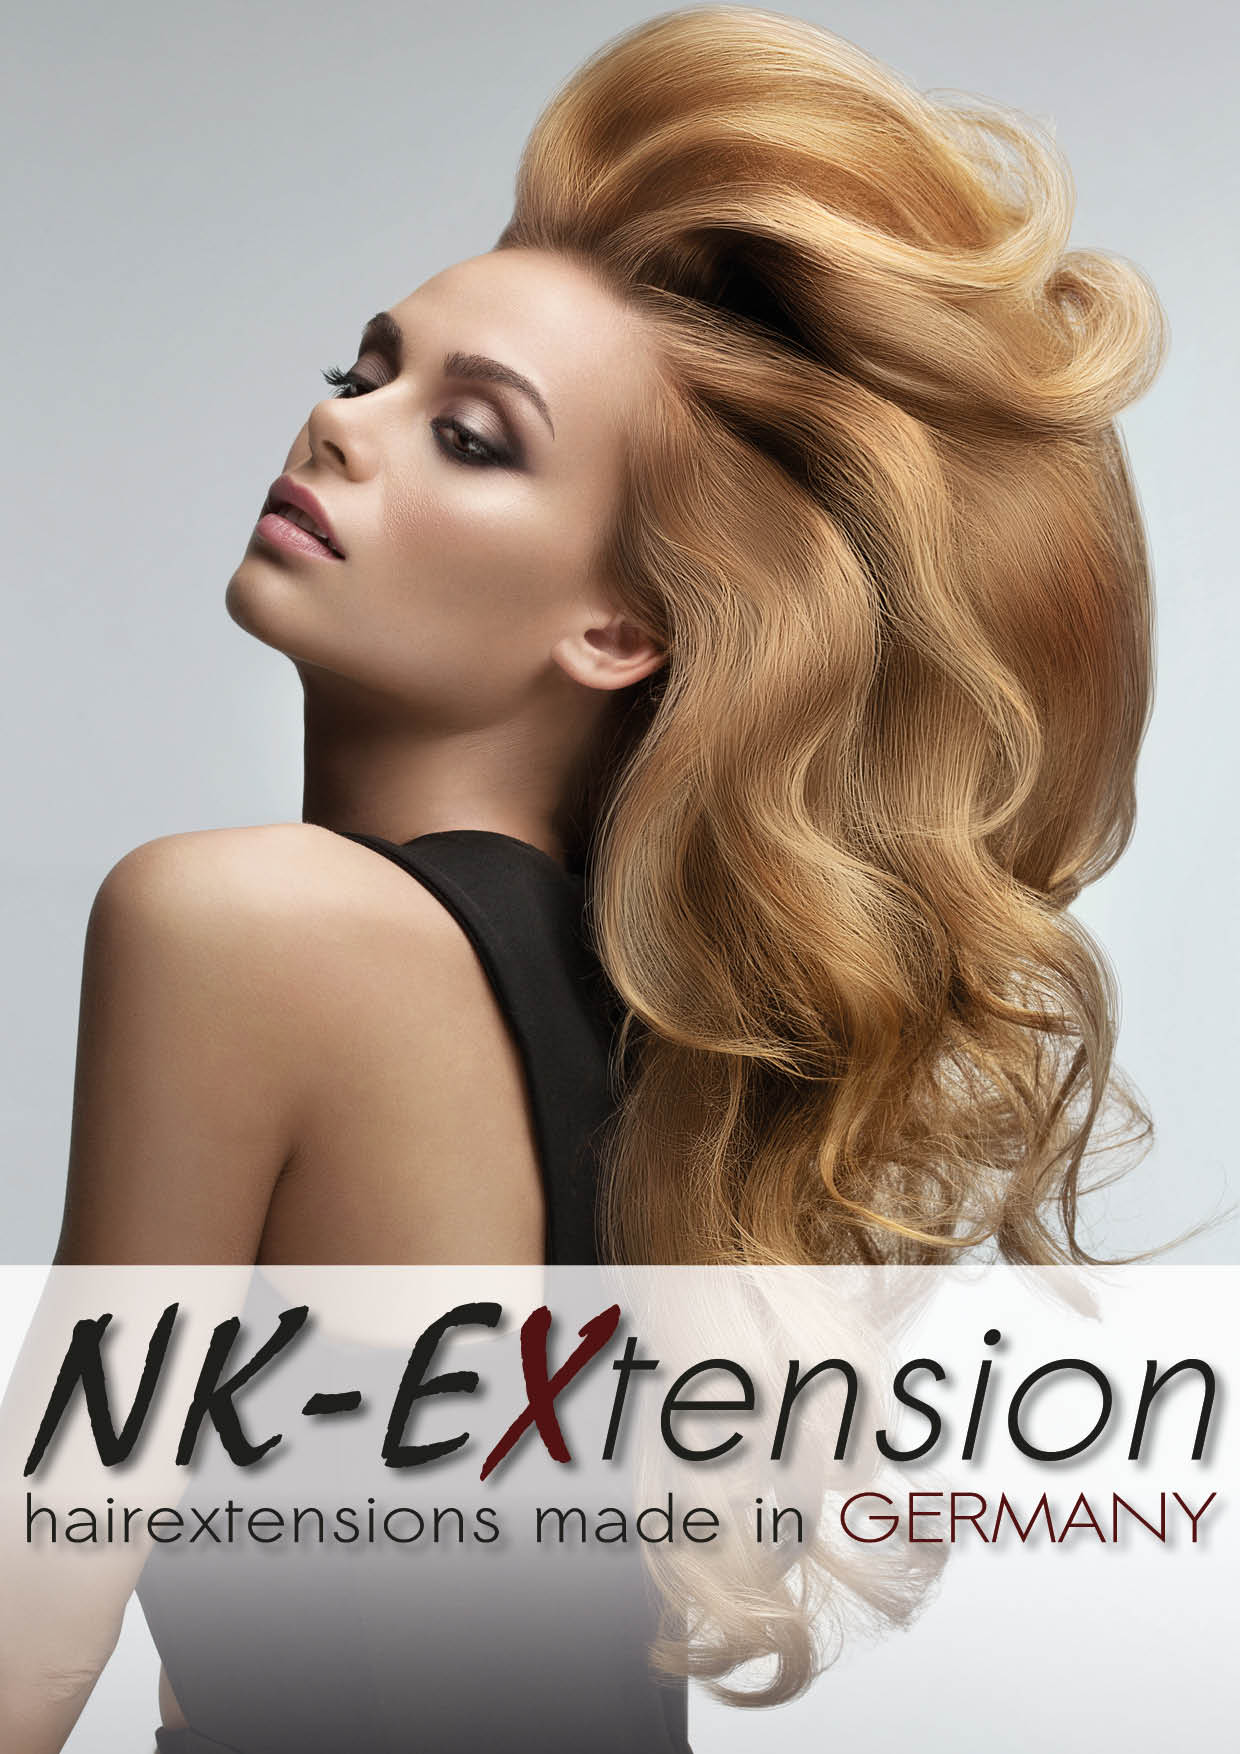 Nk extensions gunstig